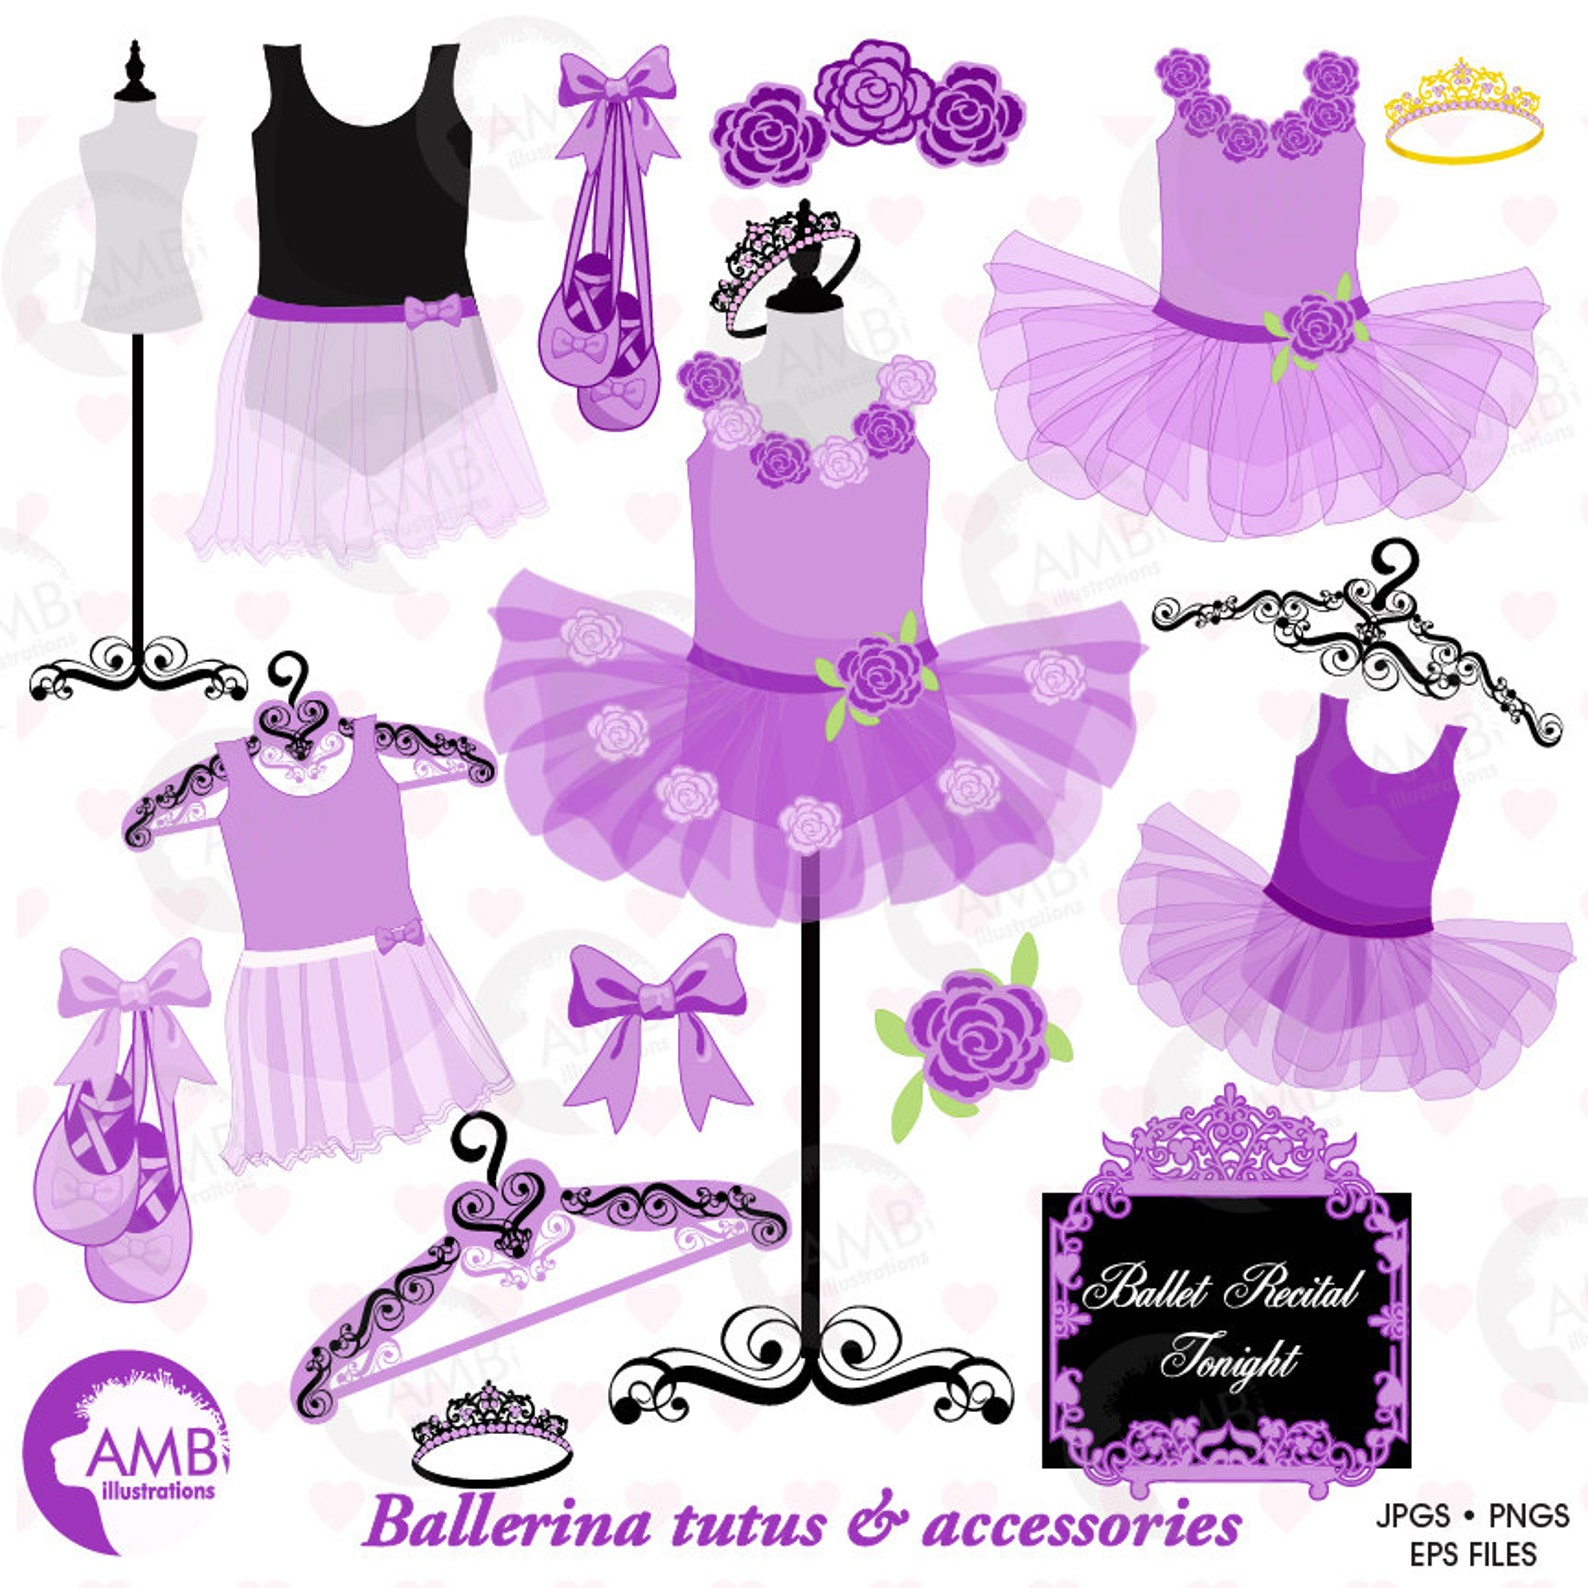 ballet clipart, ballerina clipart, ballerina tutus, lavender ballet costumes, for invites and scrapbooking, commercial use, amb-